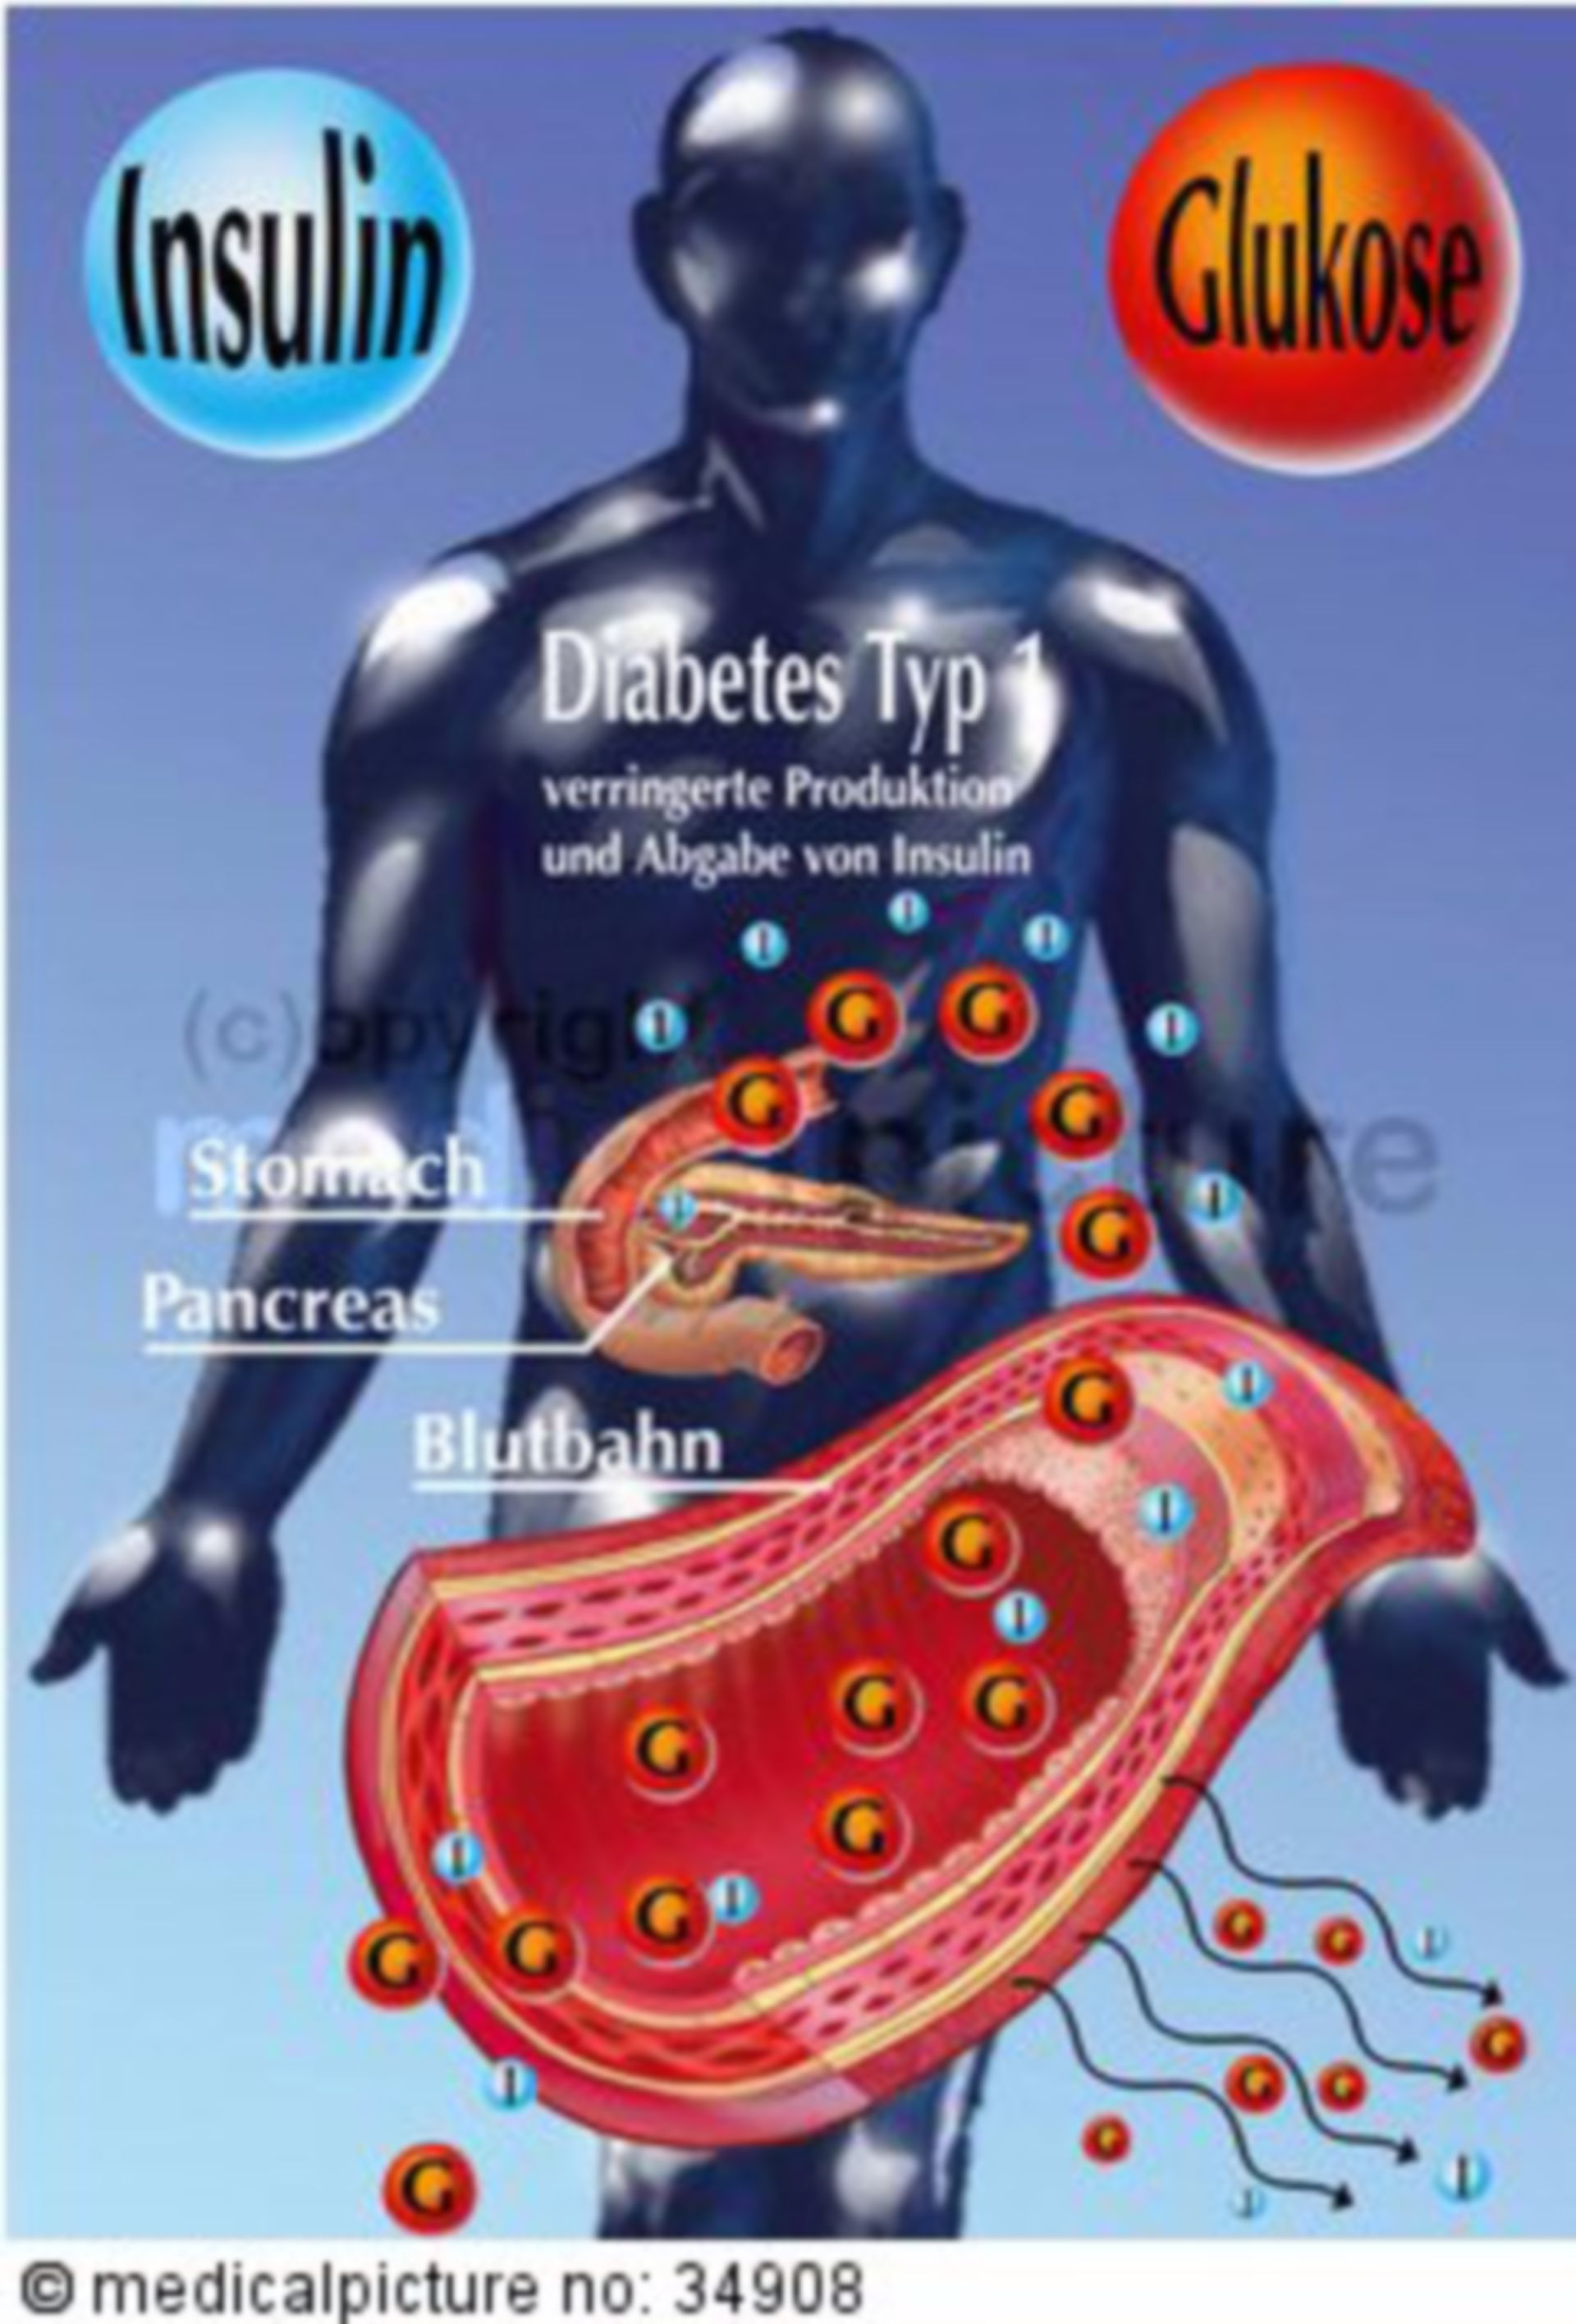 Insulin secretion of people with type I diabetes